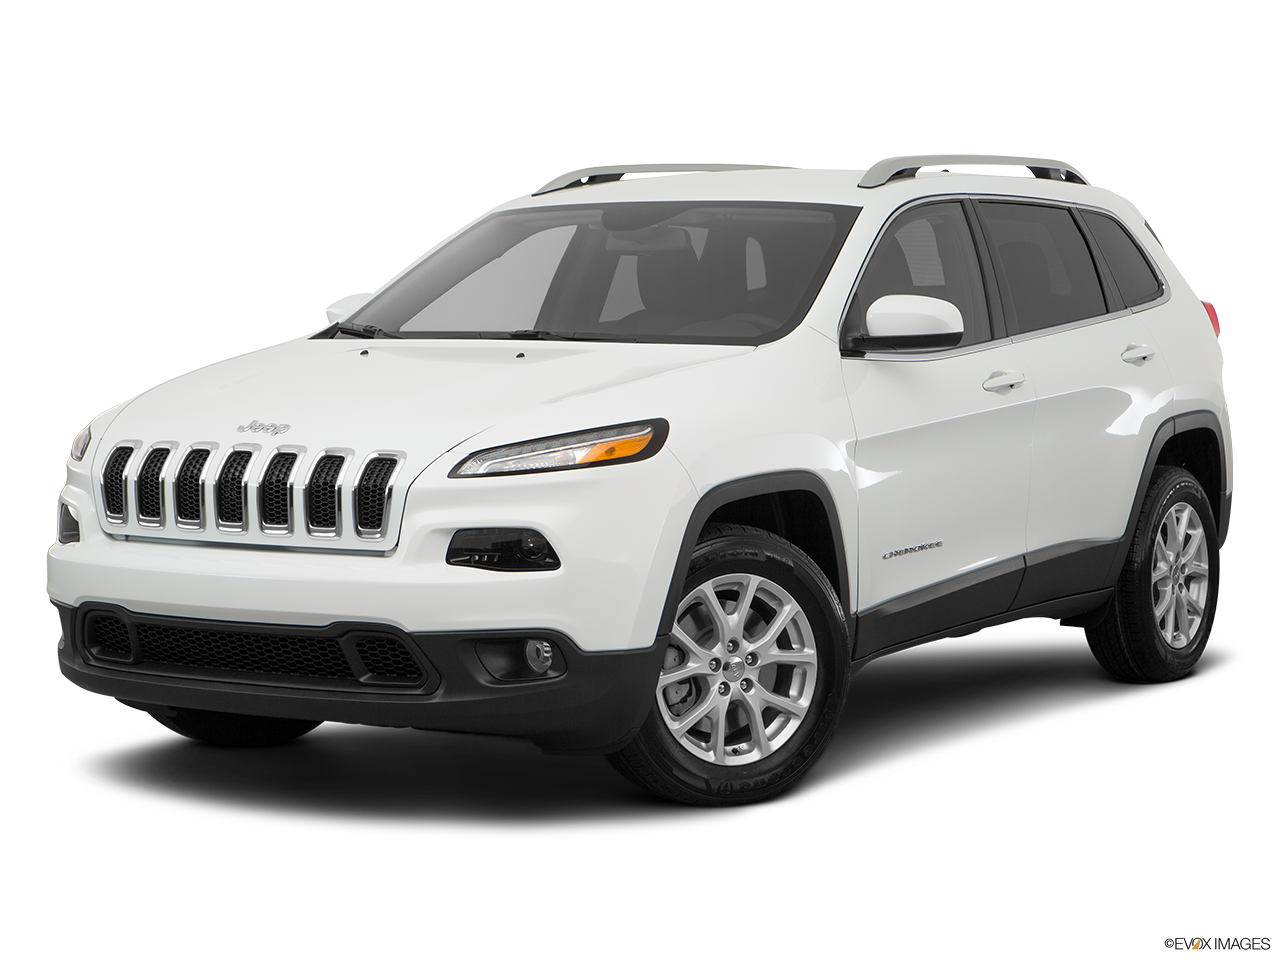 2017 jeep cherokee png. Chicago sherman dodge